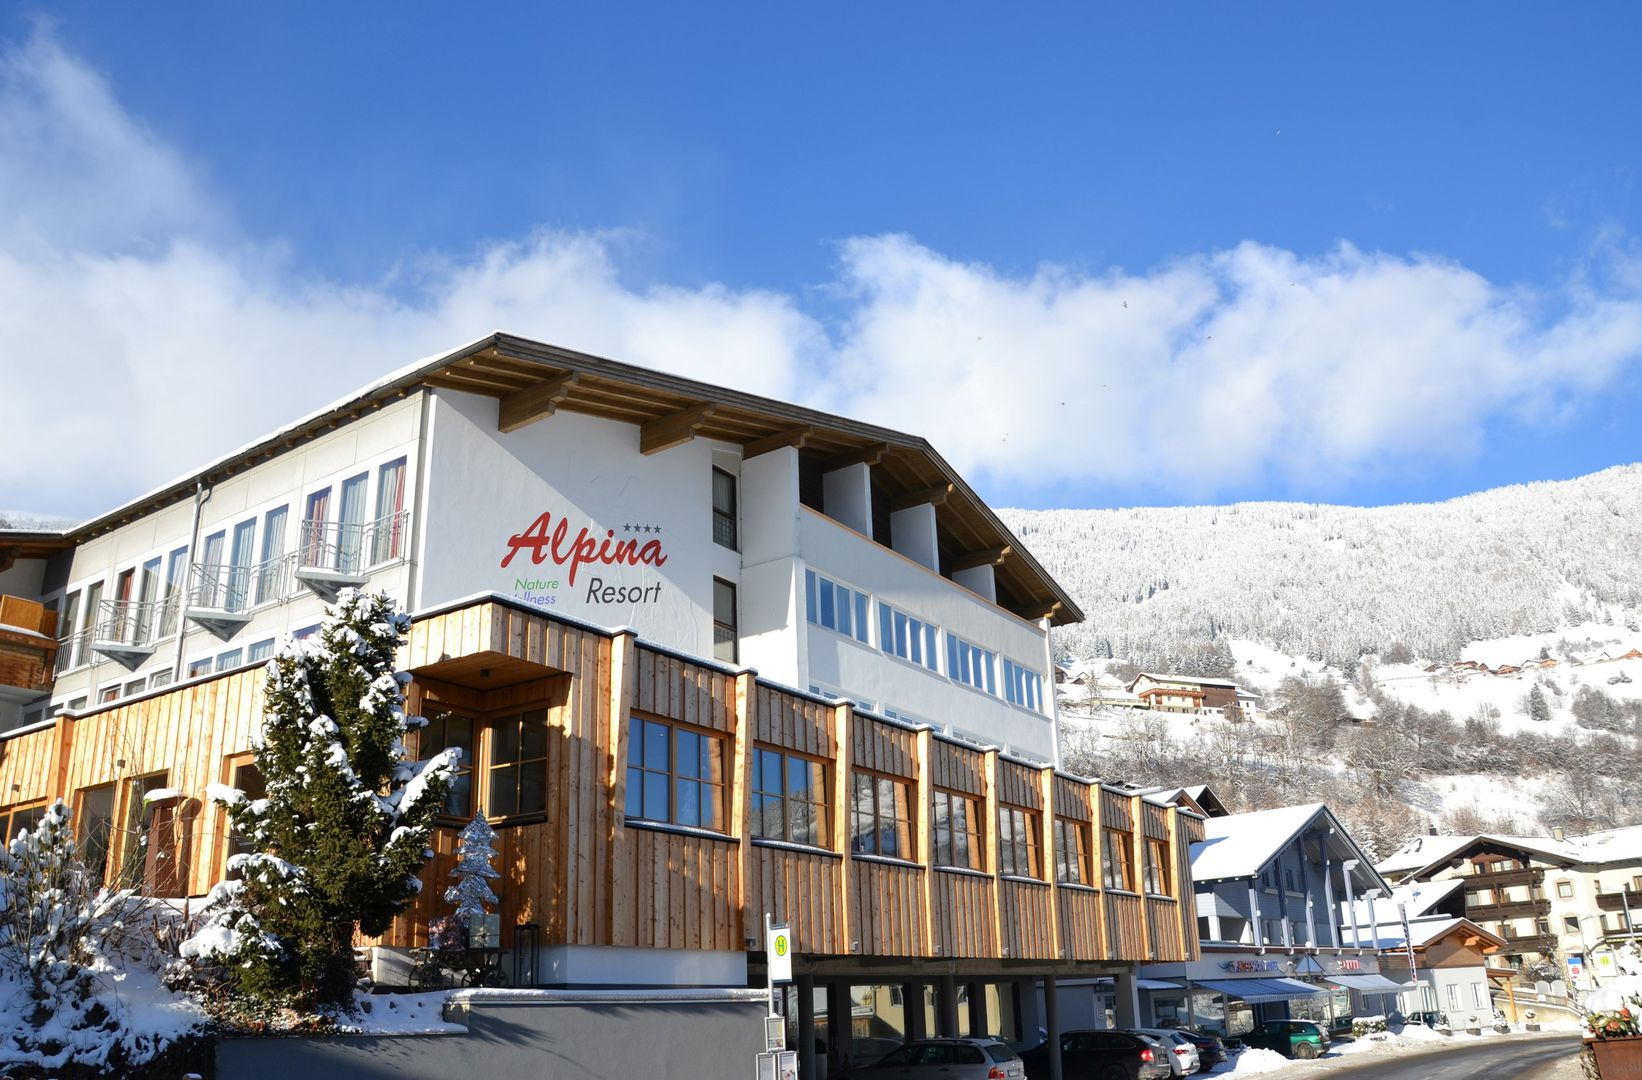 Hotel Alpina Resort